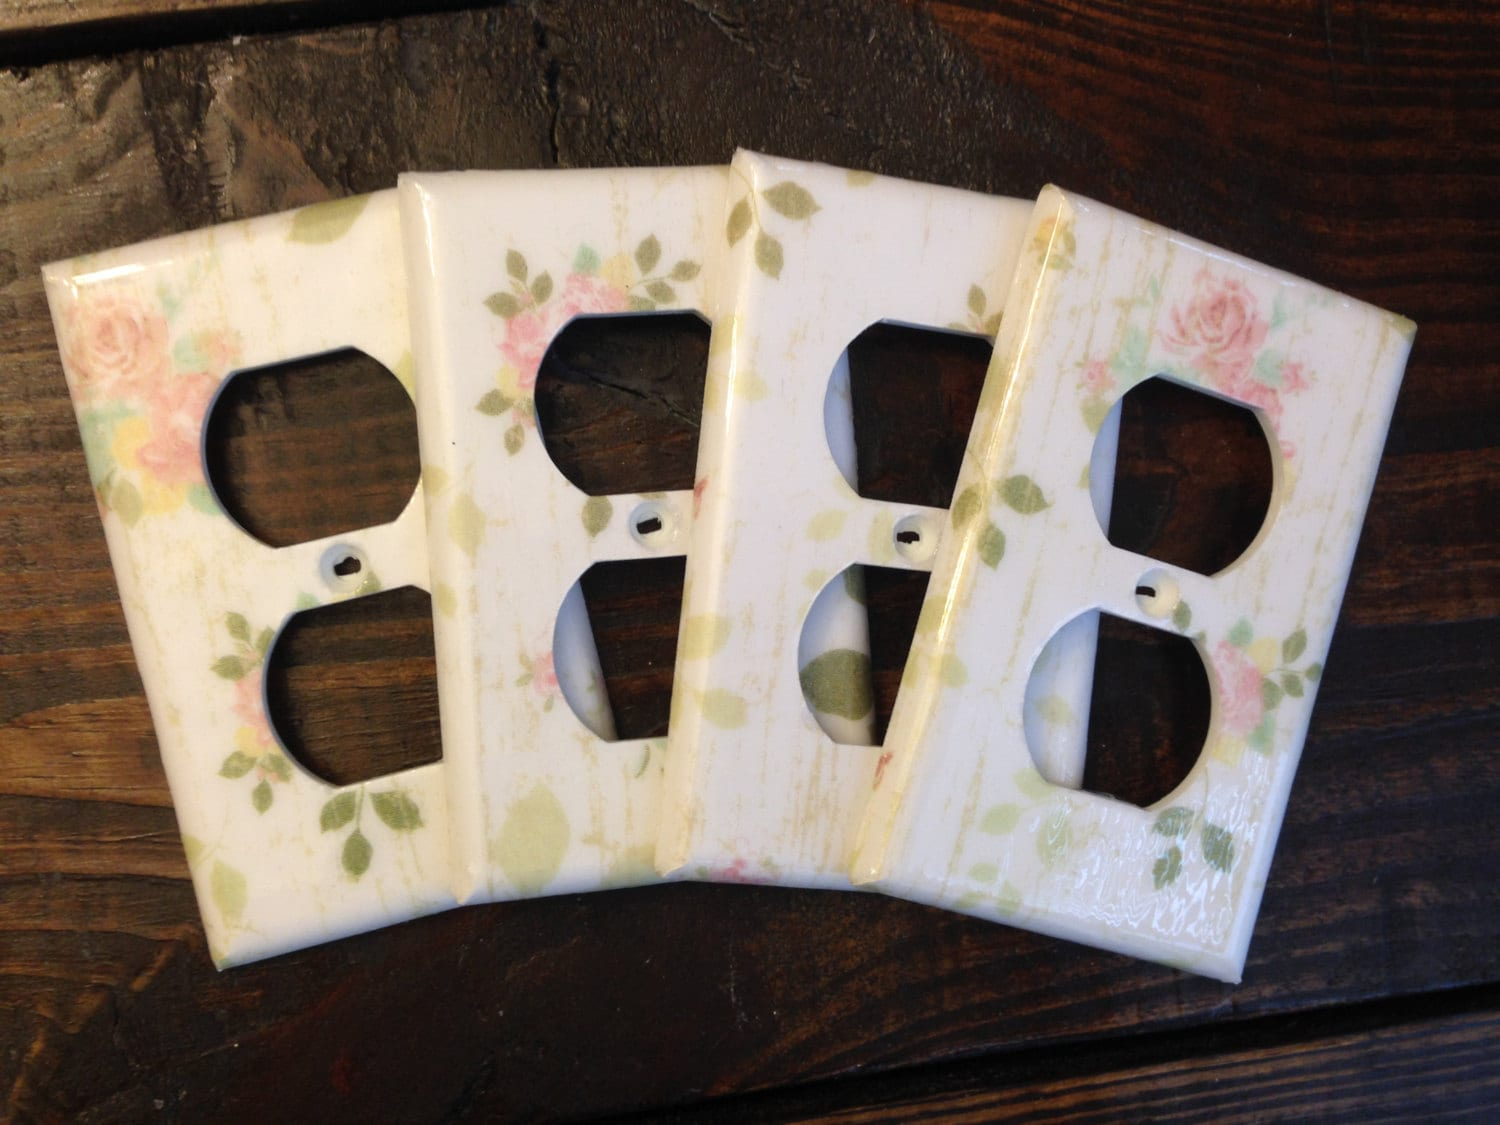 4 Decorative Light Switch And Wall Outlet Covers By